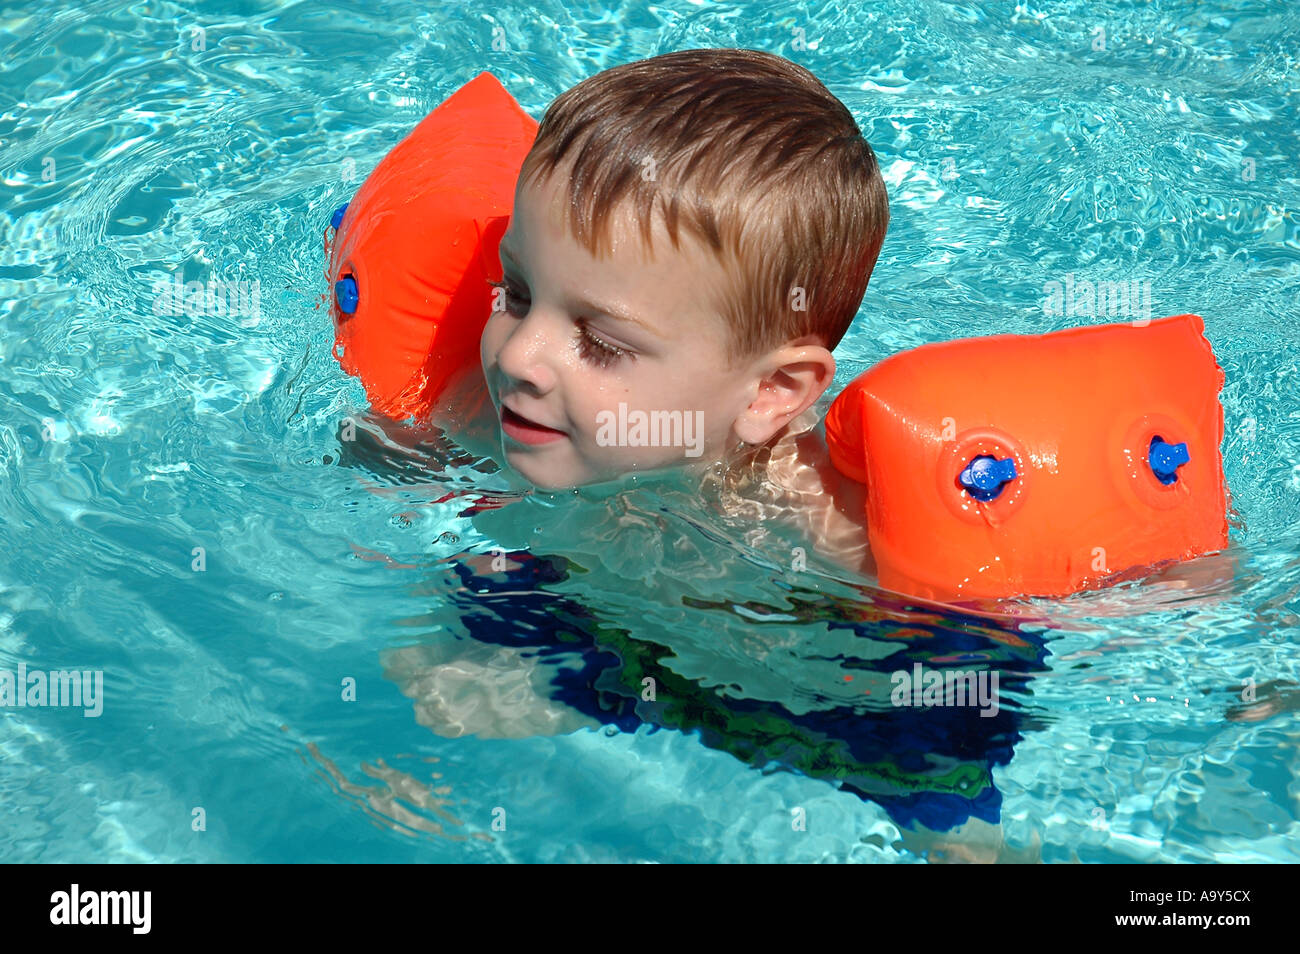 Swimming Pool Wings : Boy with water wings in swimming pool stock photo